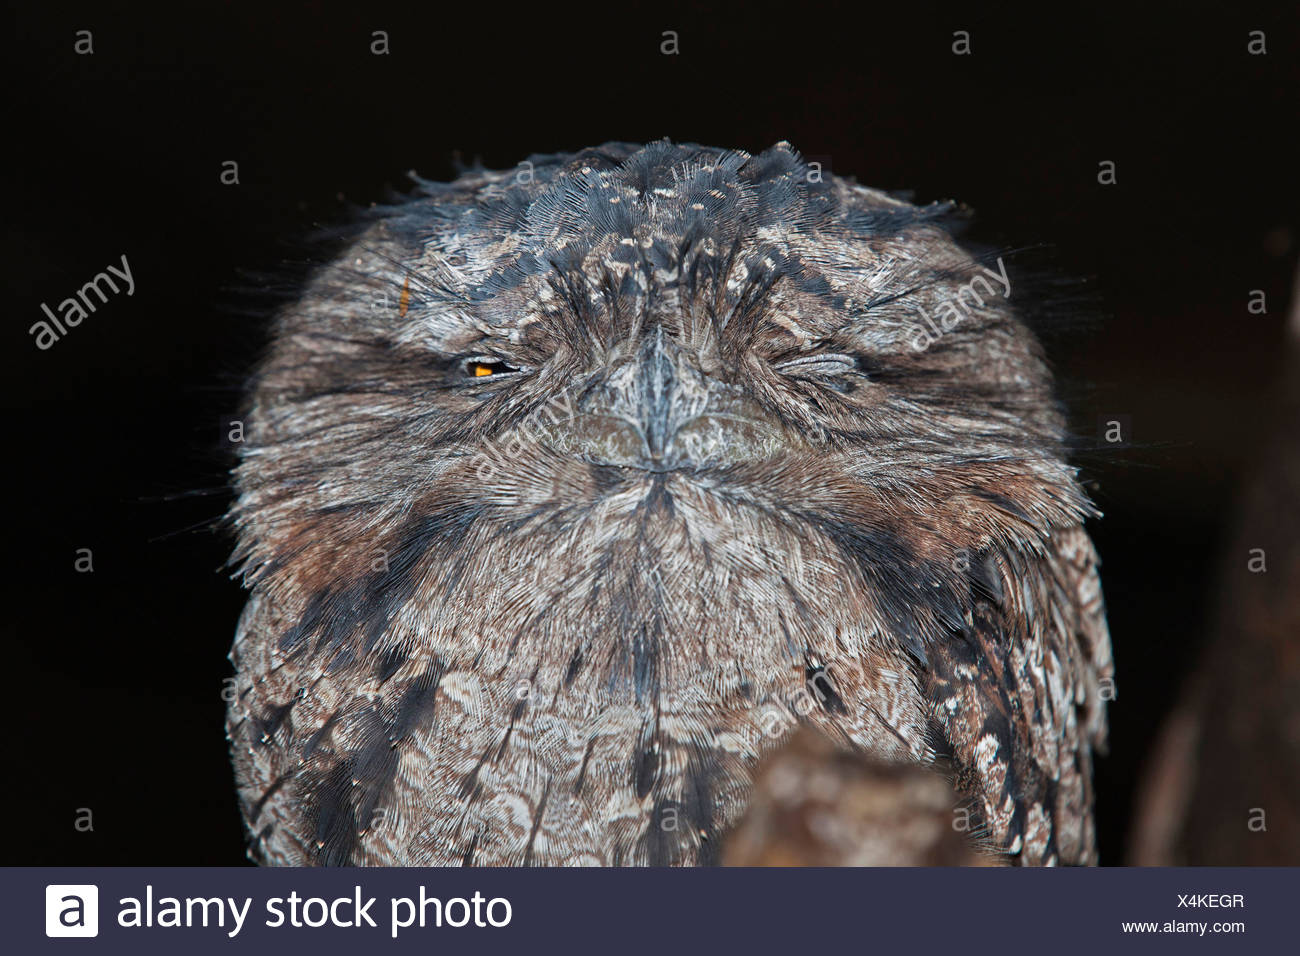 tawny frogmouth (Podargus strigoides), tied squeaker, Australia, Queensland - Stock Image